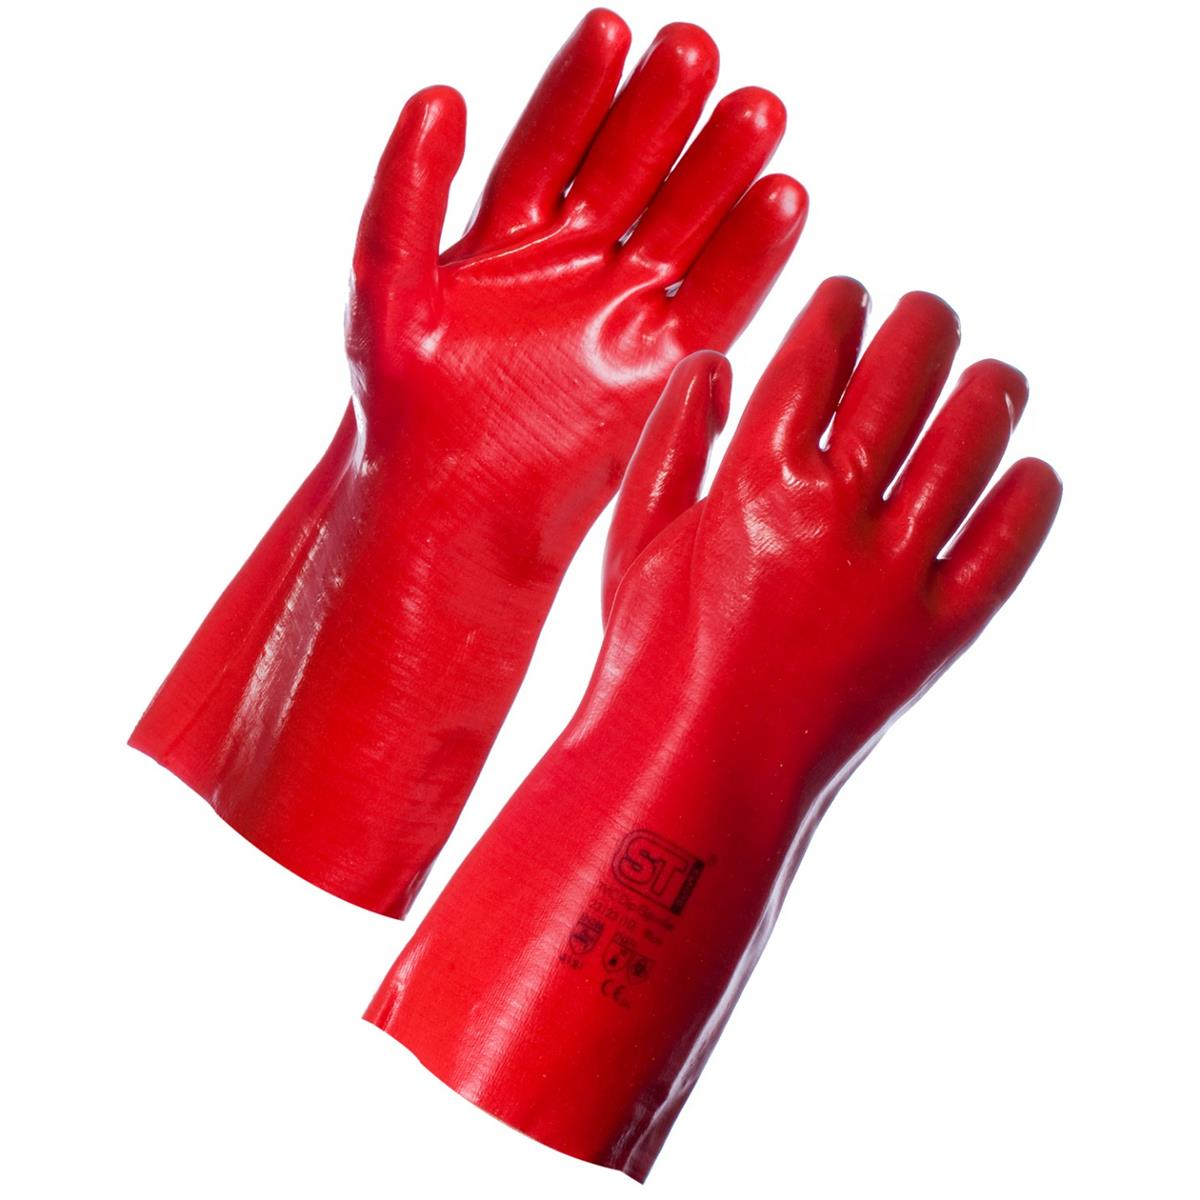 Supertouch Industrial Gauntlets Abrasion-resistant PVC Dipped 35cm Ref 23123 [Pair]